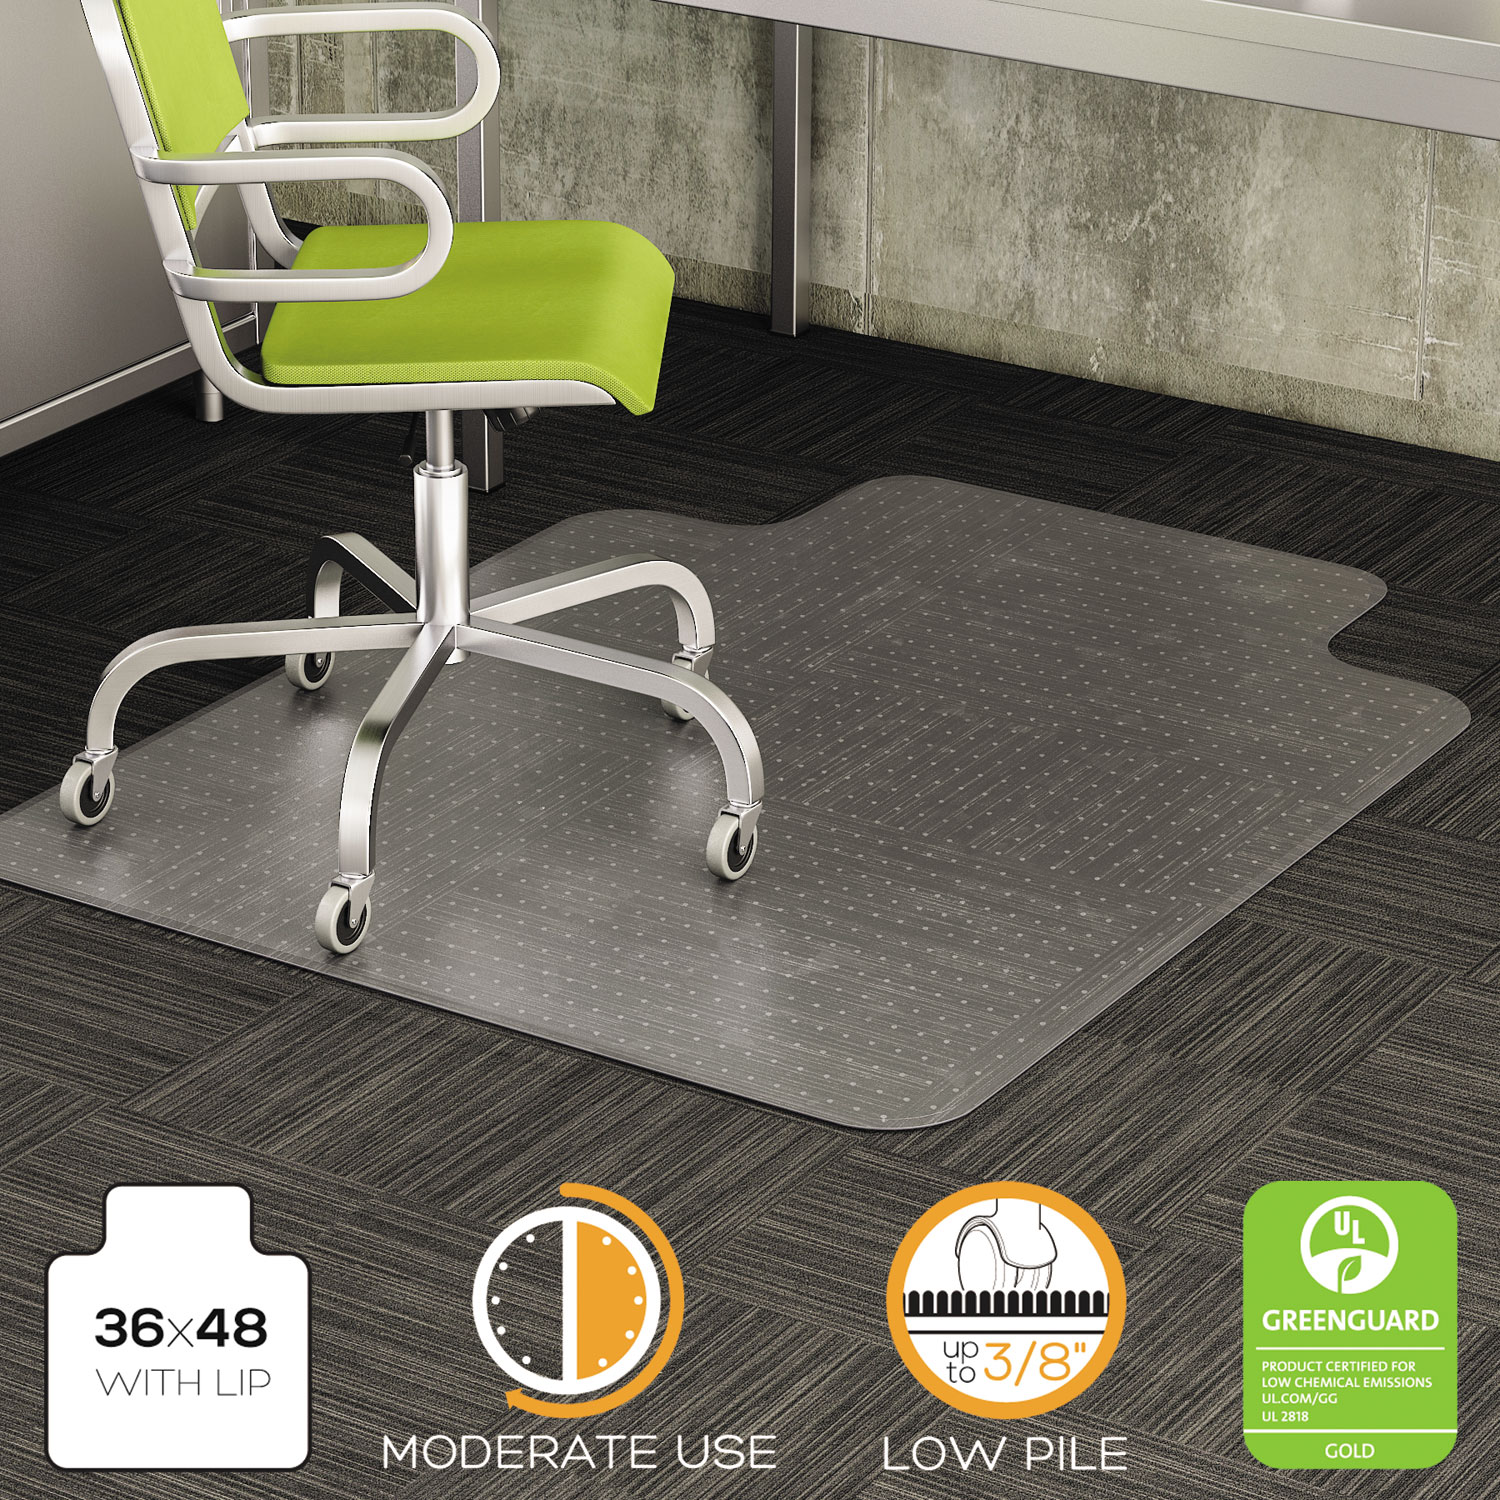 duramat moderate use chair mat for low pile carpet by deflecto